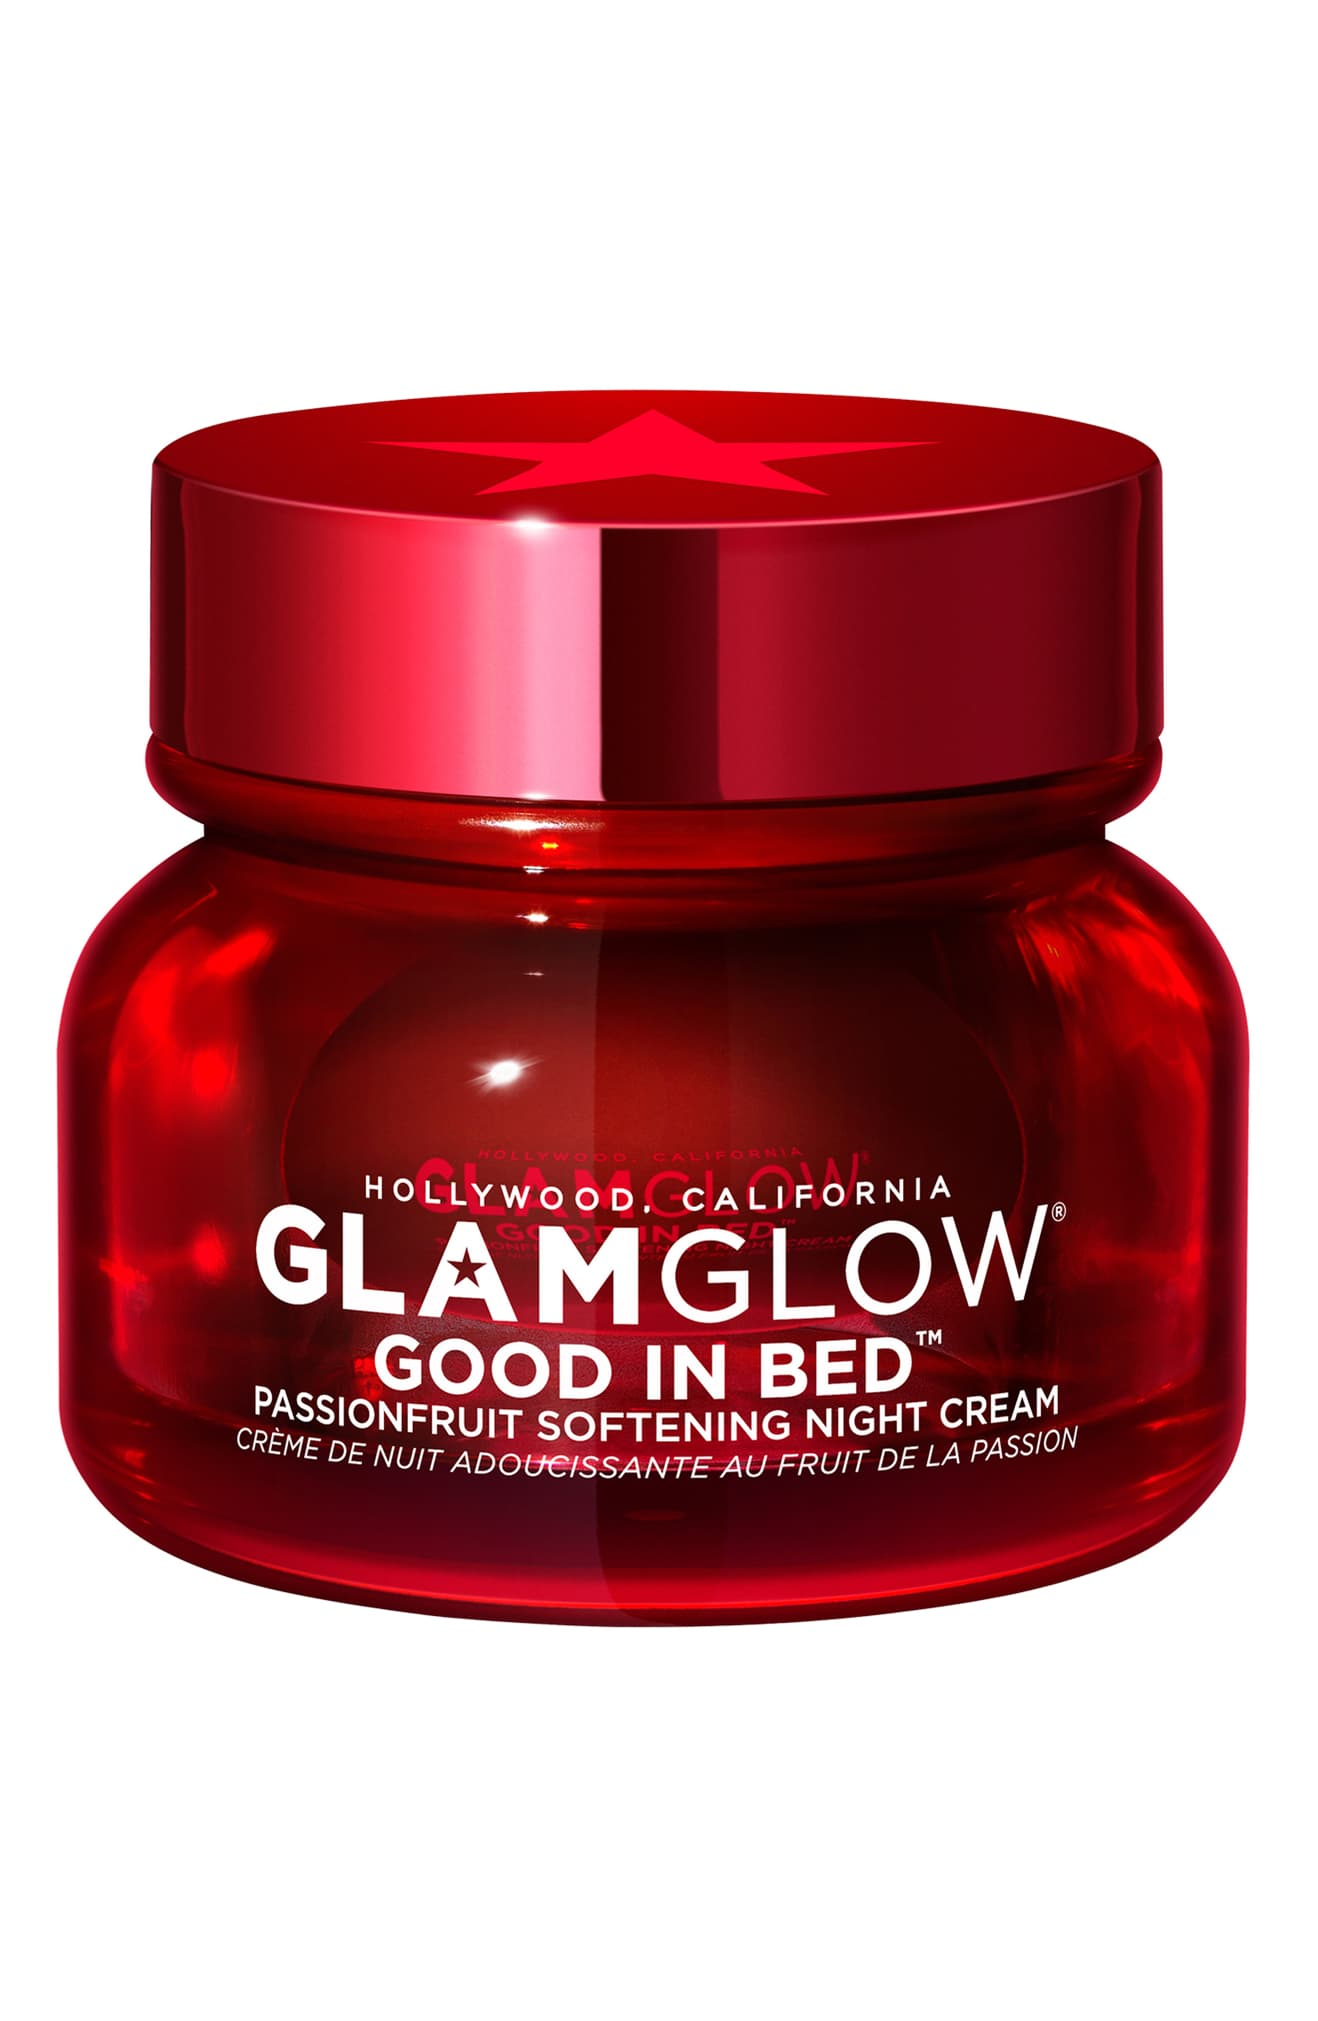 GLAMGLOW®-Good In Bed™ Passionfruit Softening Night Crème